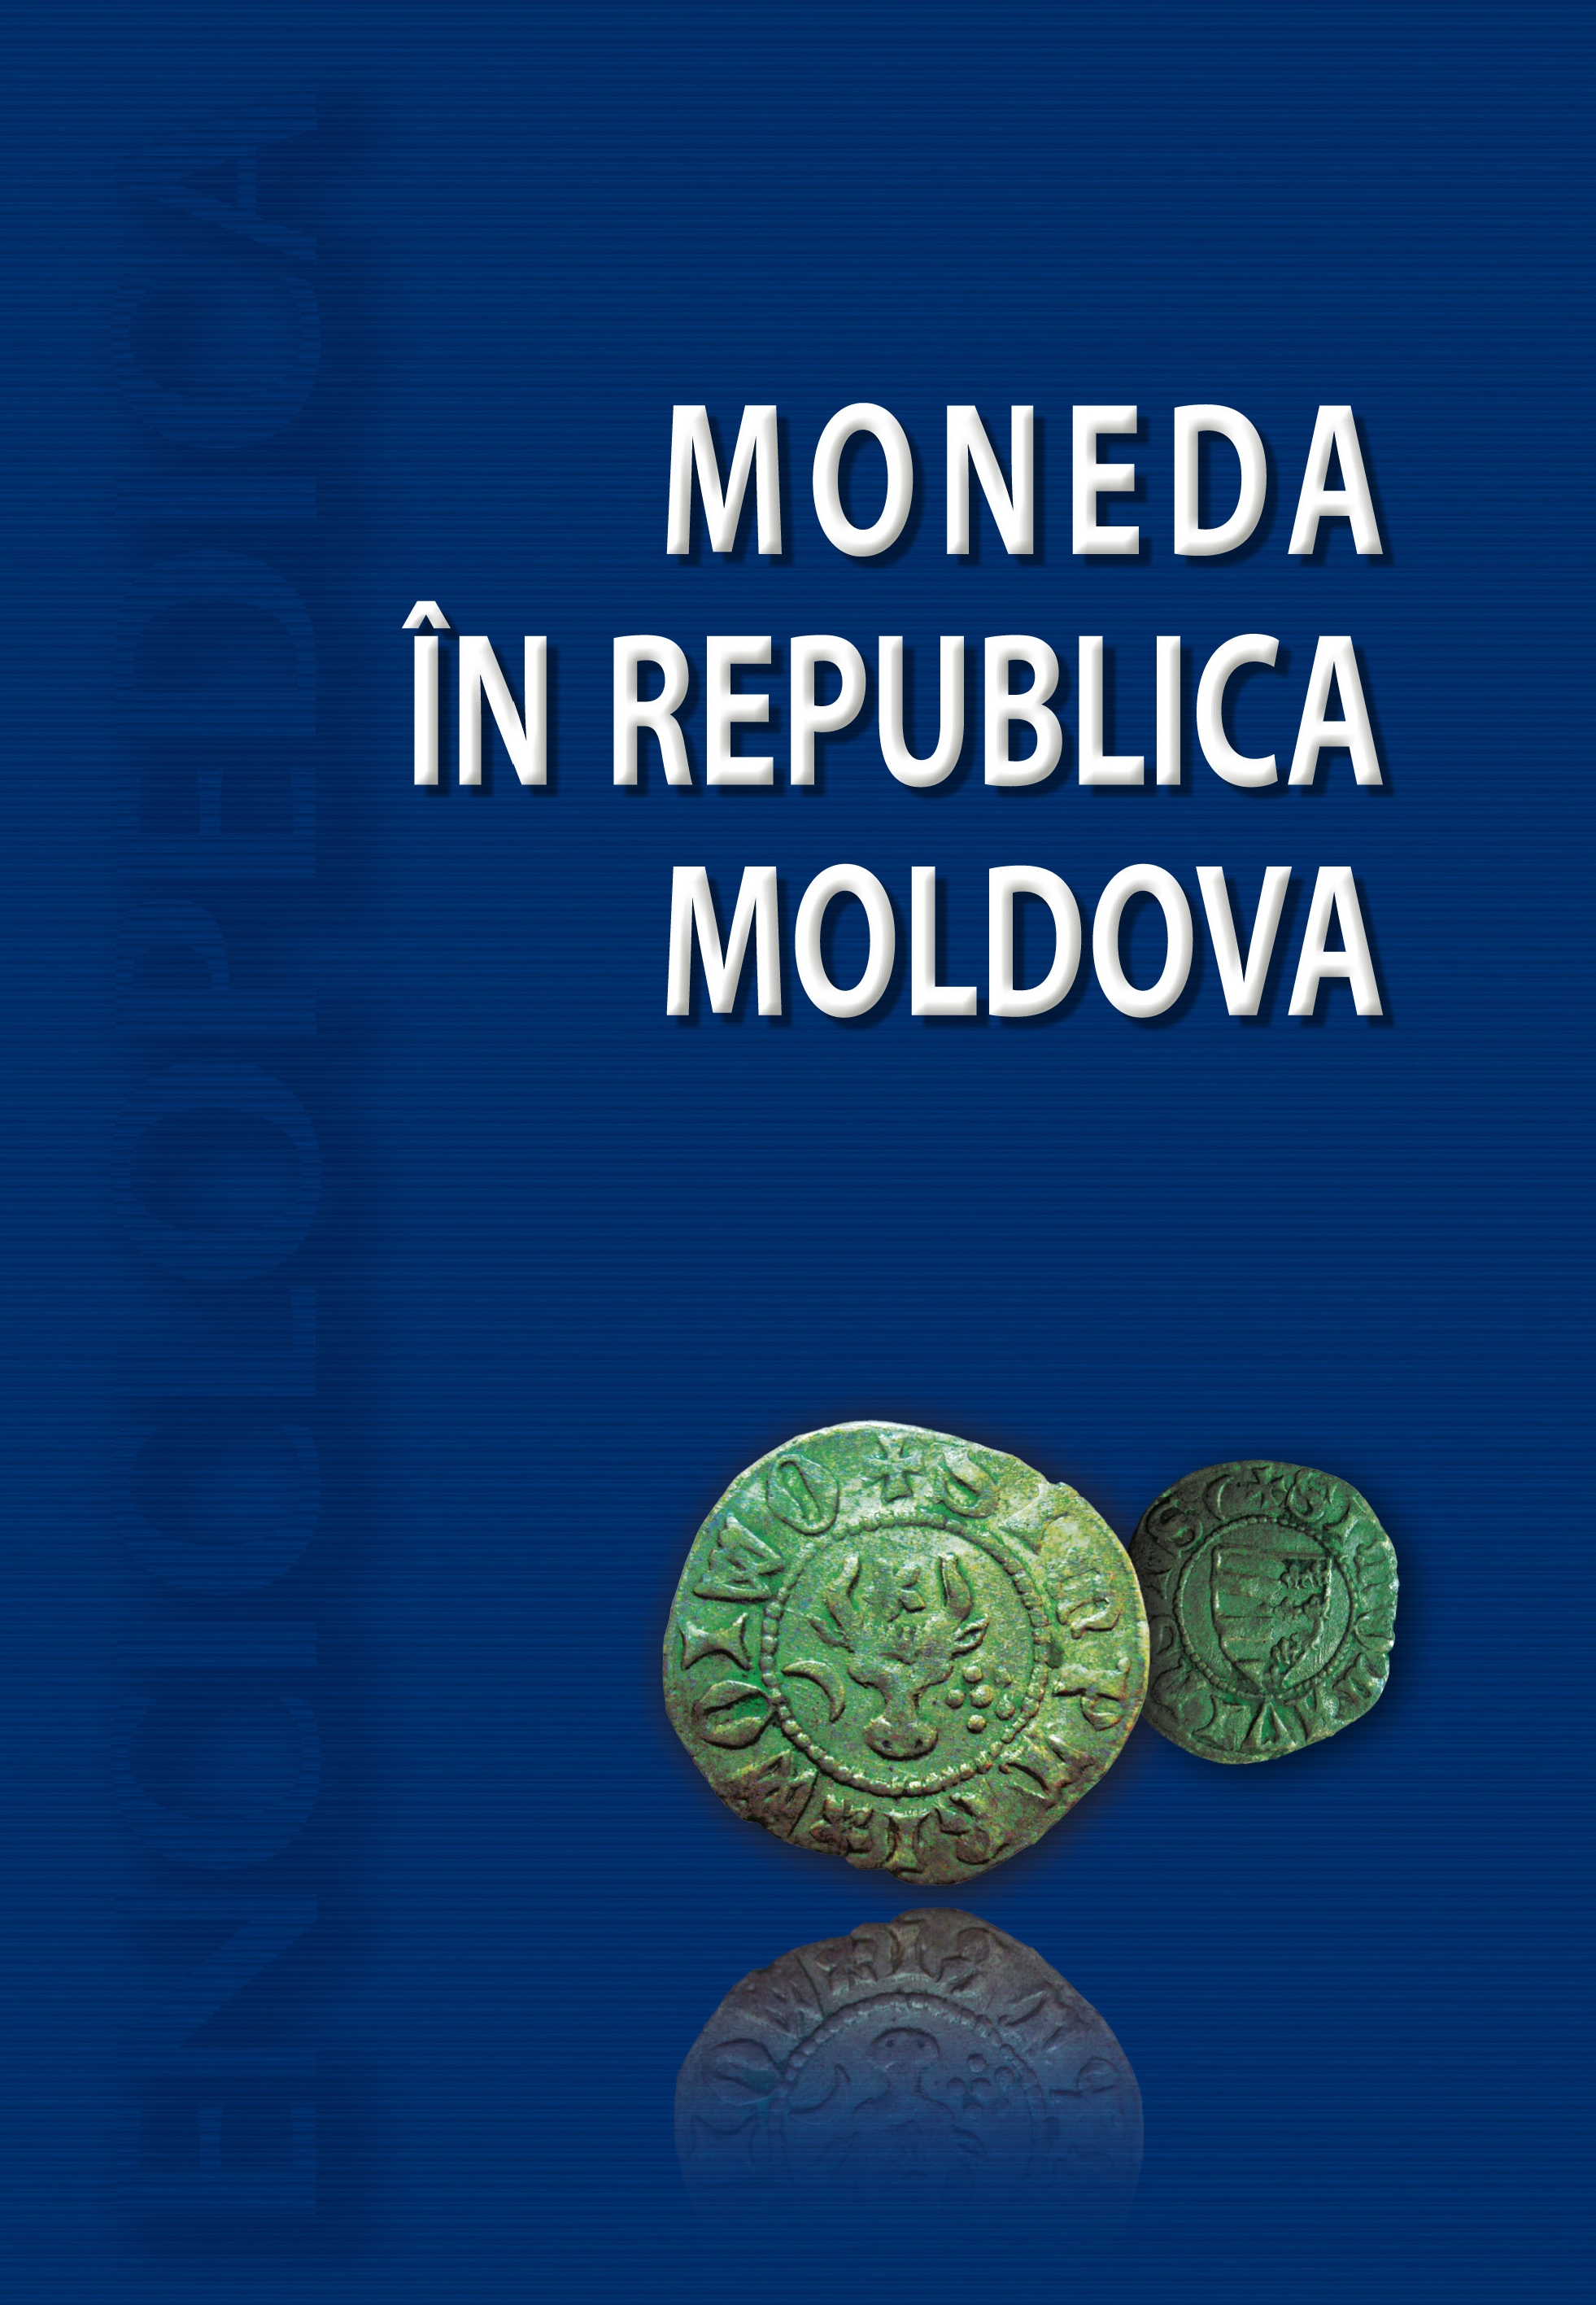 Moneda in Republica Moldova_sit_001